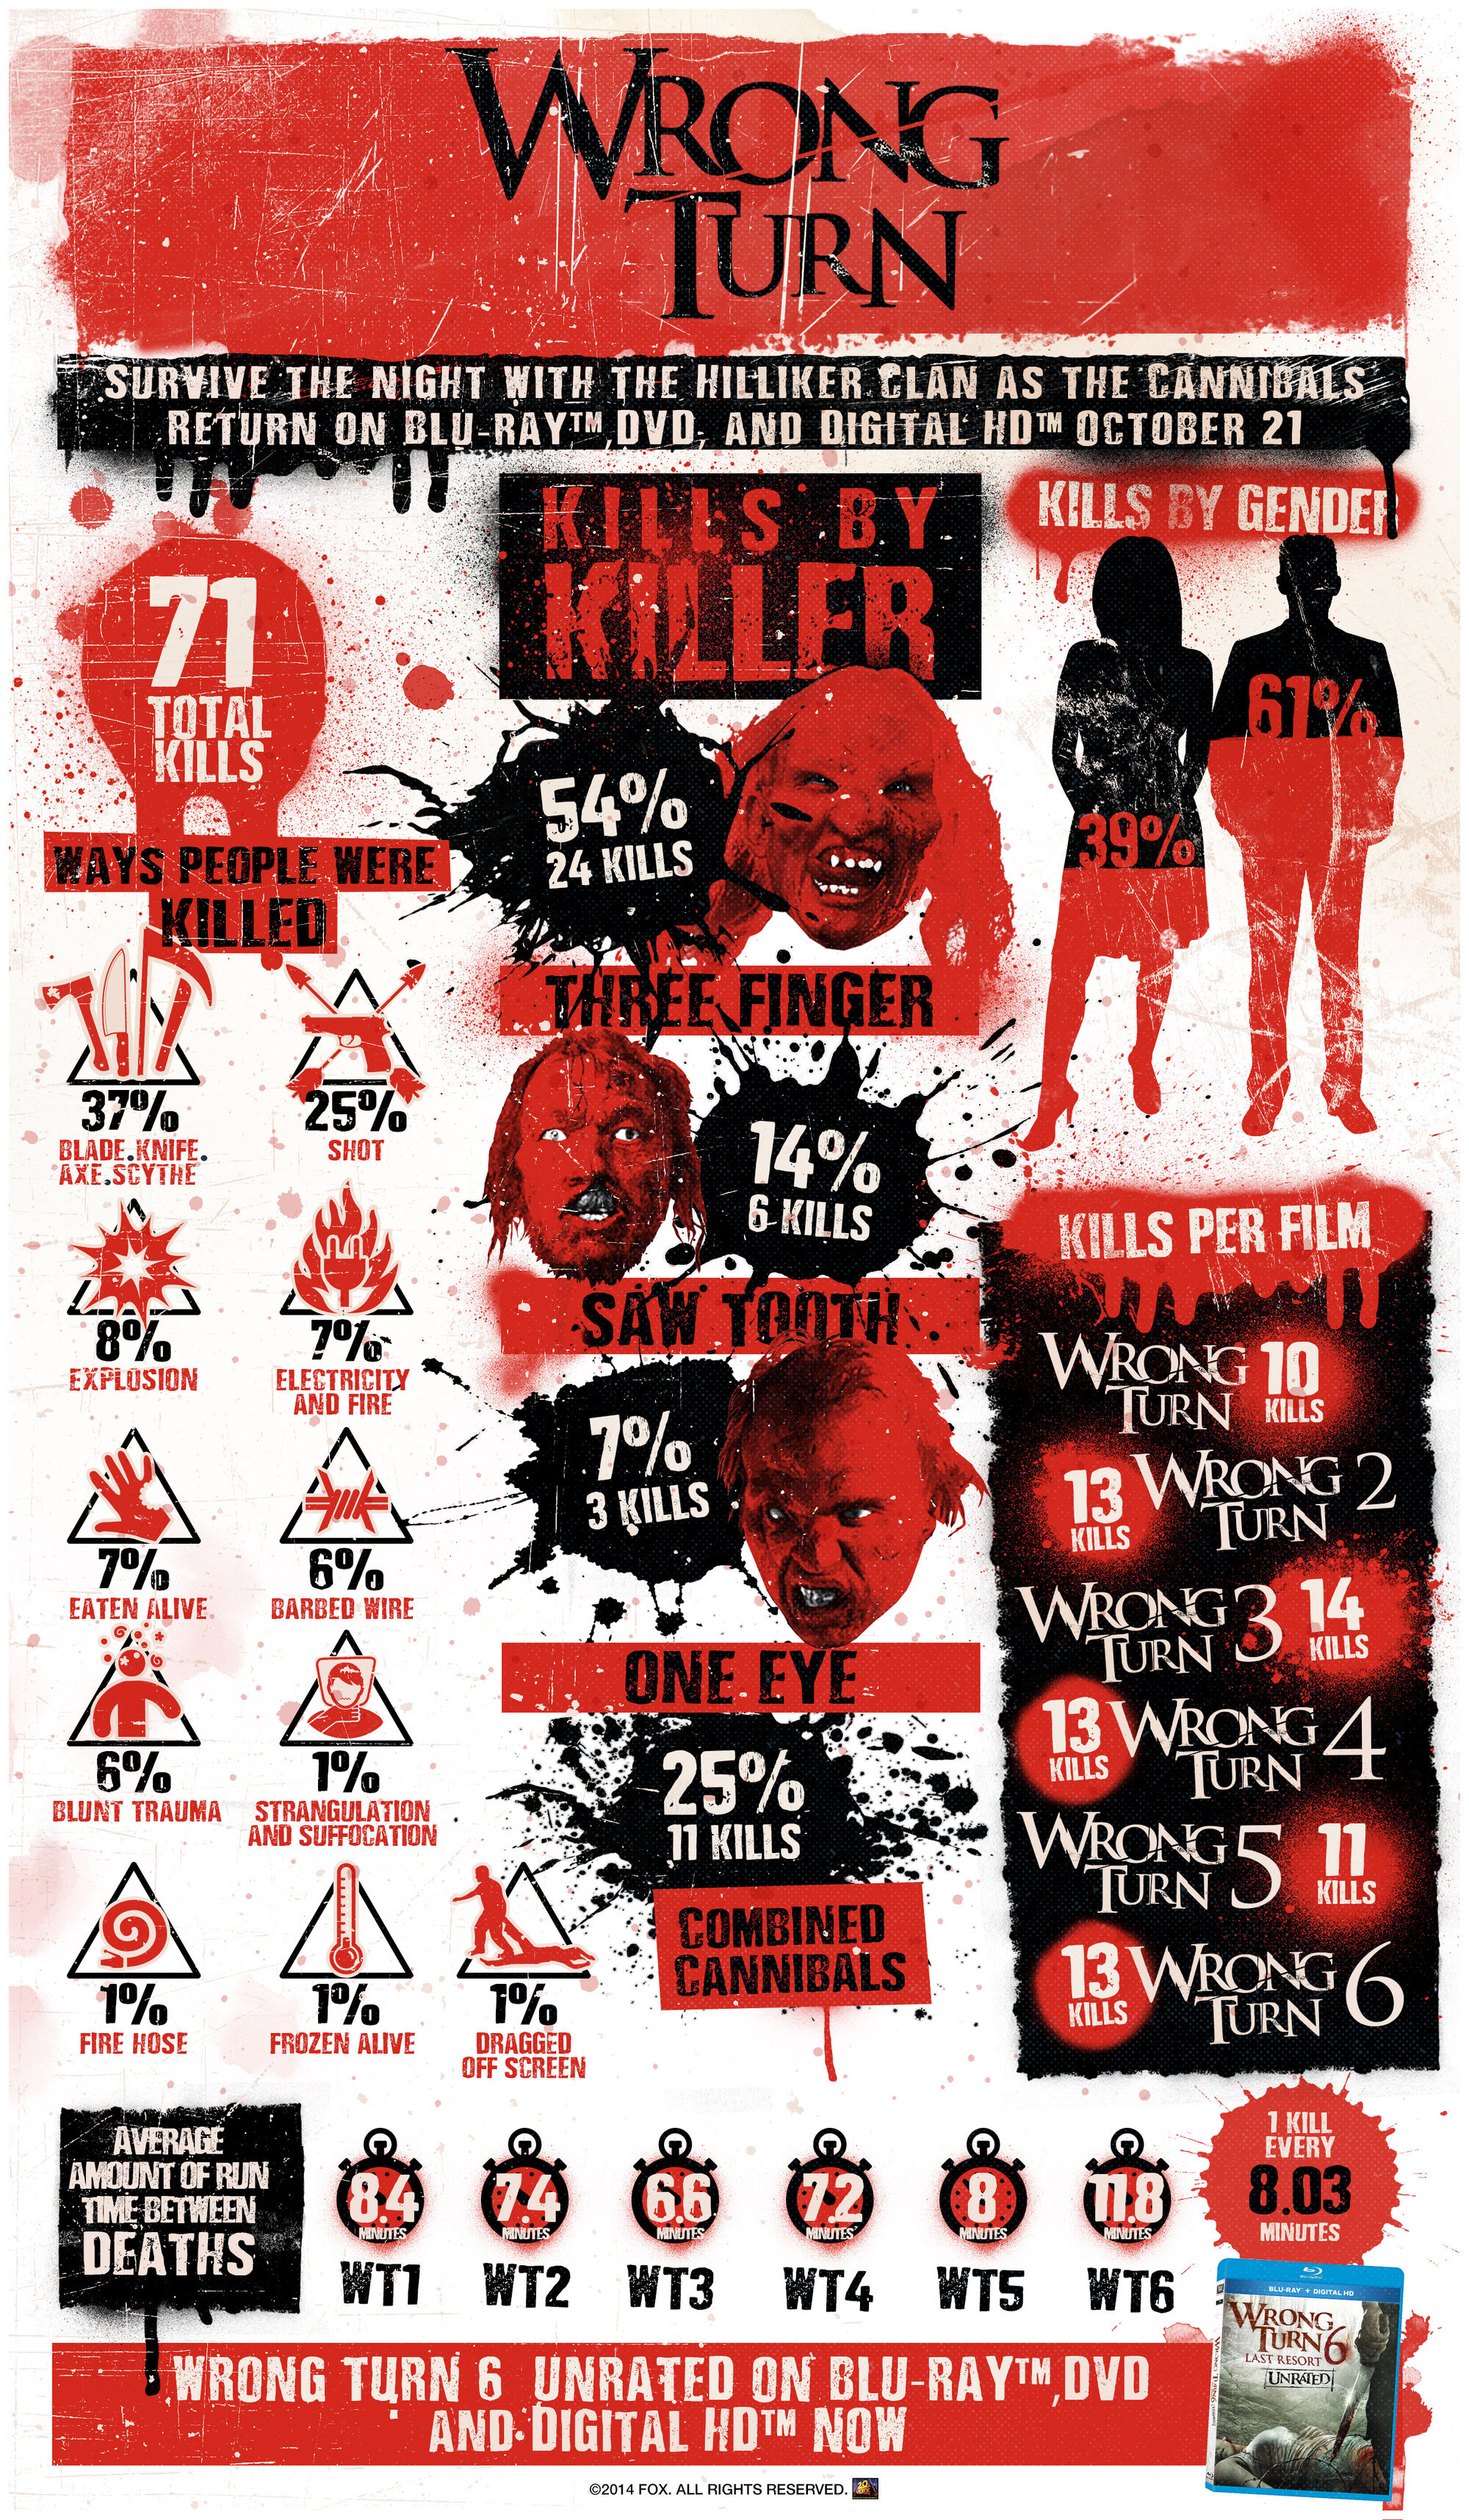 List of deaths in Wrong Turn series   Horror Film Wiki